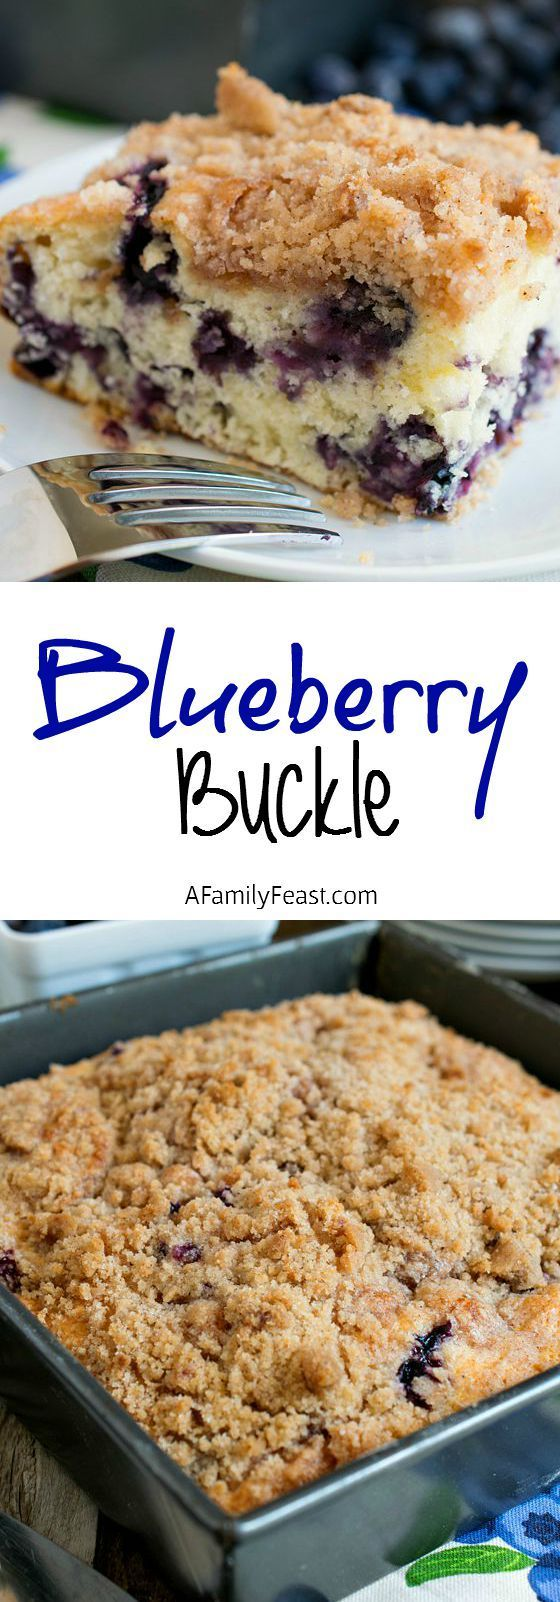 A delicious, 100+ year old family recipe for Blueberry Buckle that has been passed down through generations!: